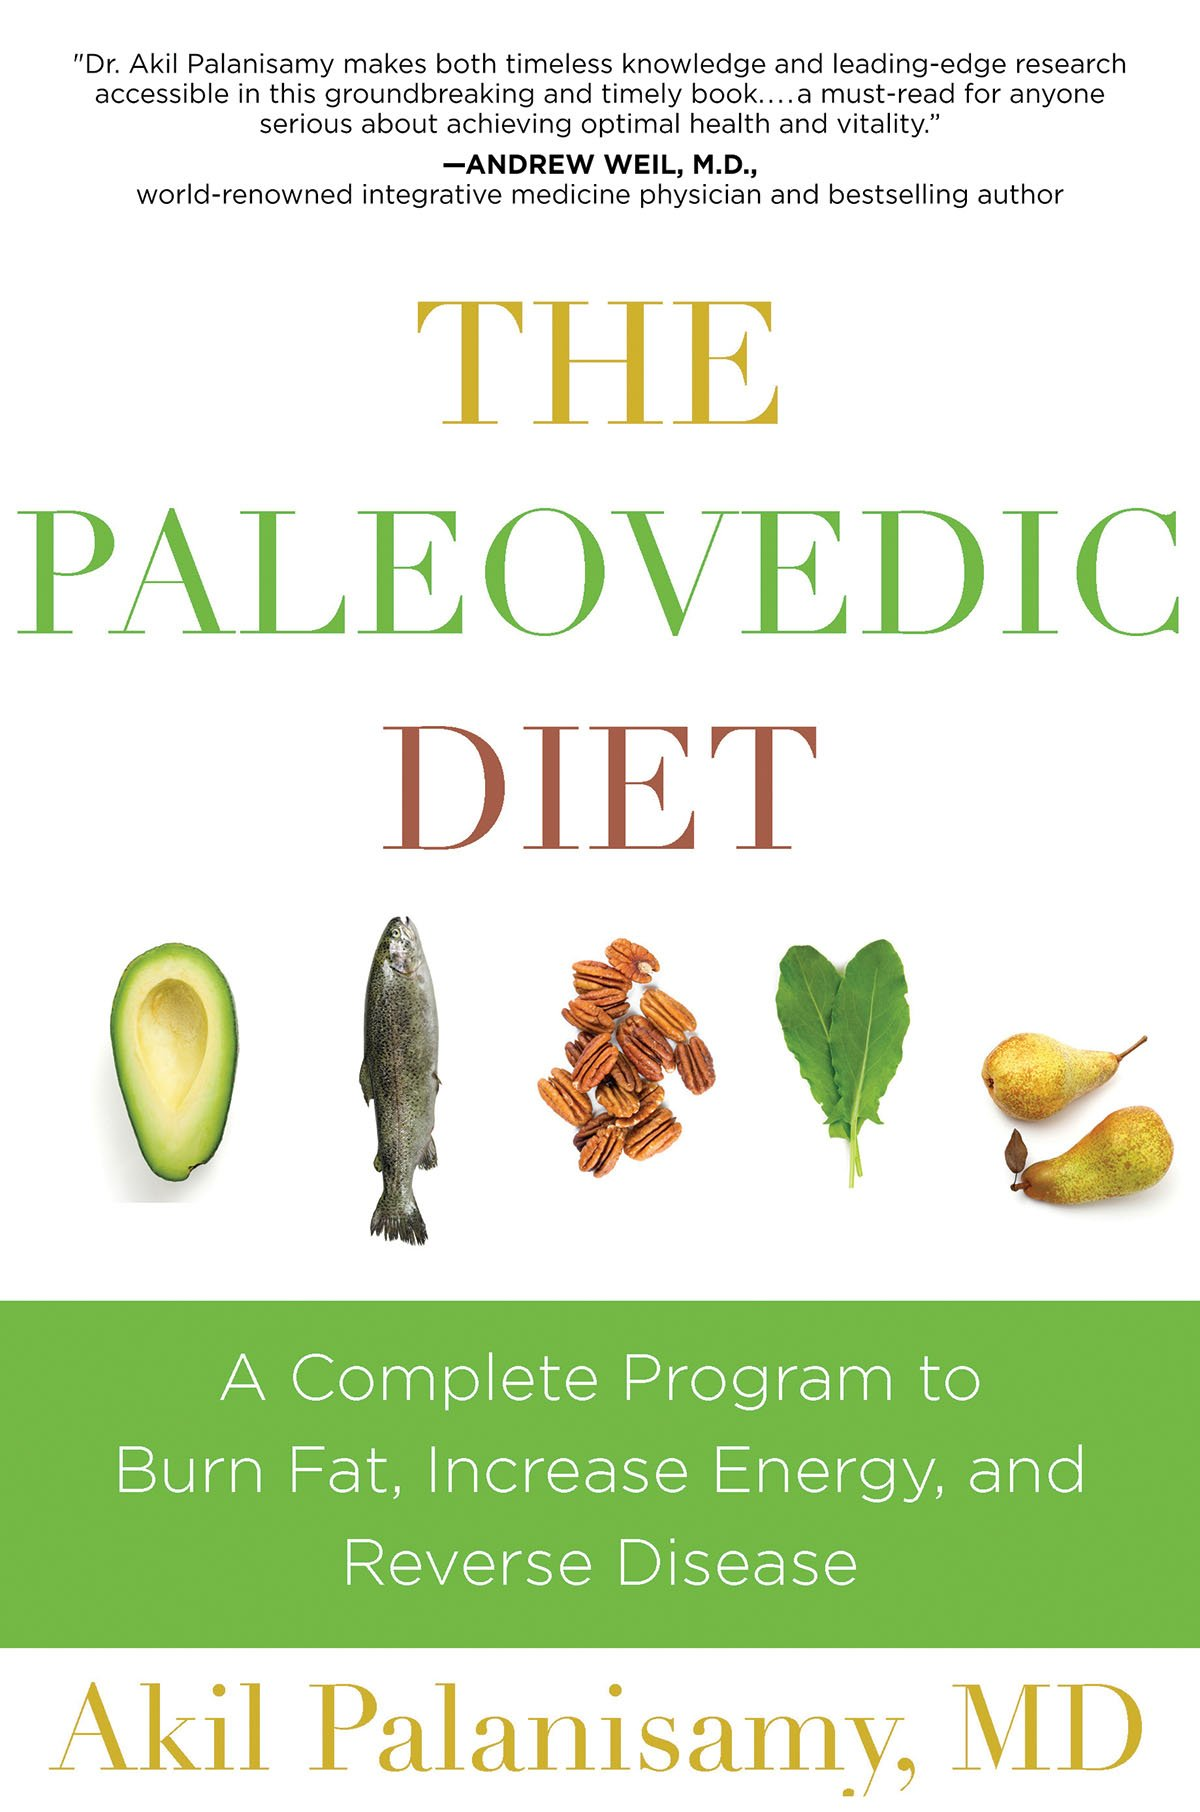 What the Heck Is the Paleovedic Diet